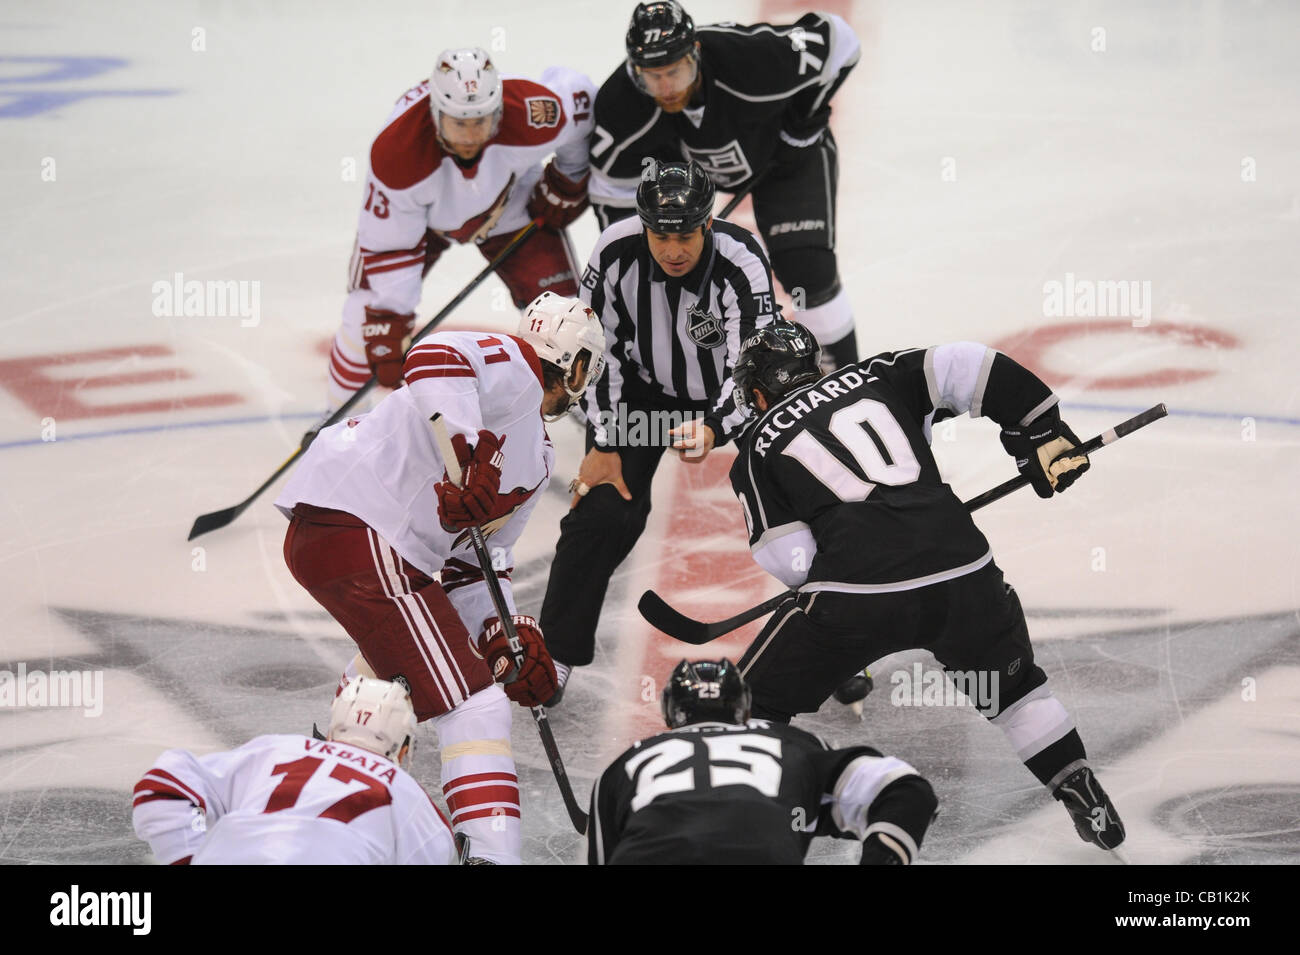 20.05.2012. Los Angeles, California, Staples Center.  Kings (10) Mike Richards and Coyotes (11) Martin Hanzal  in - Stock Image